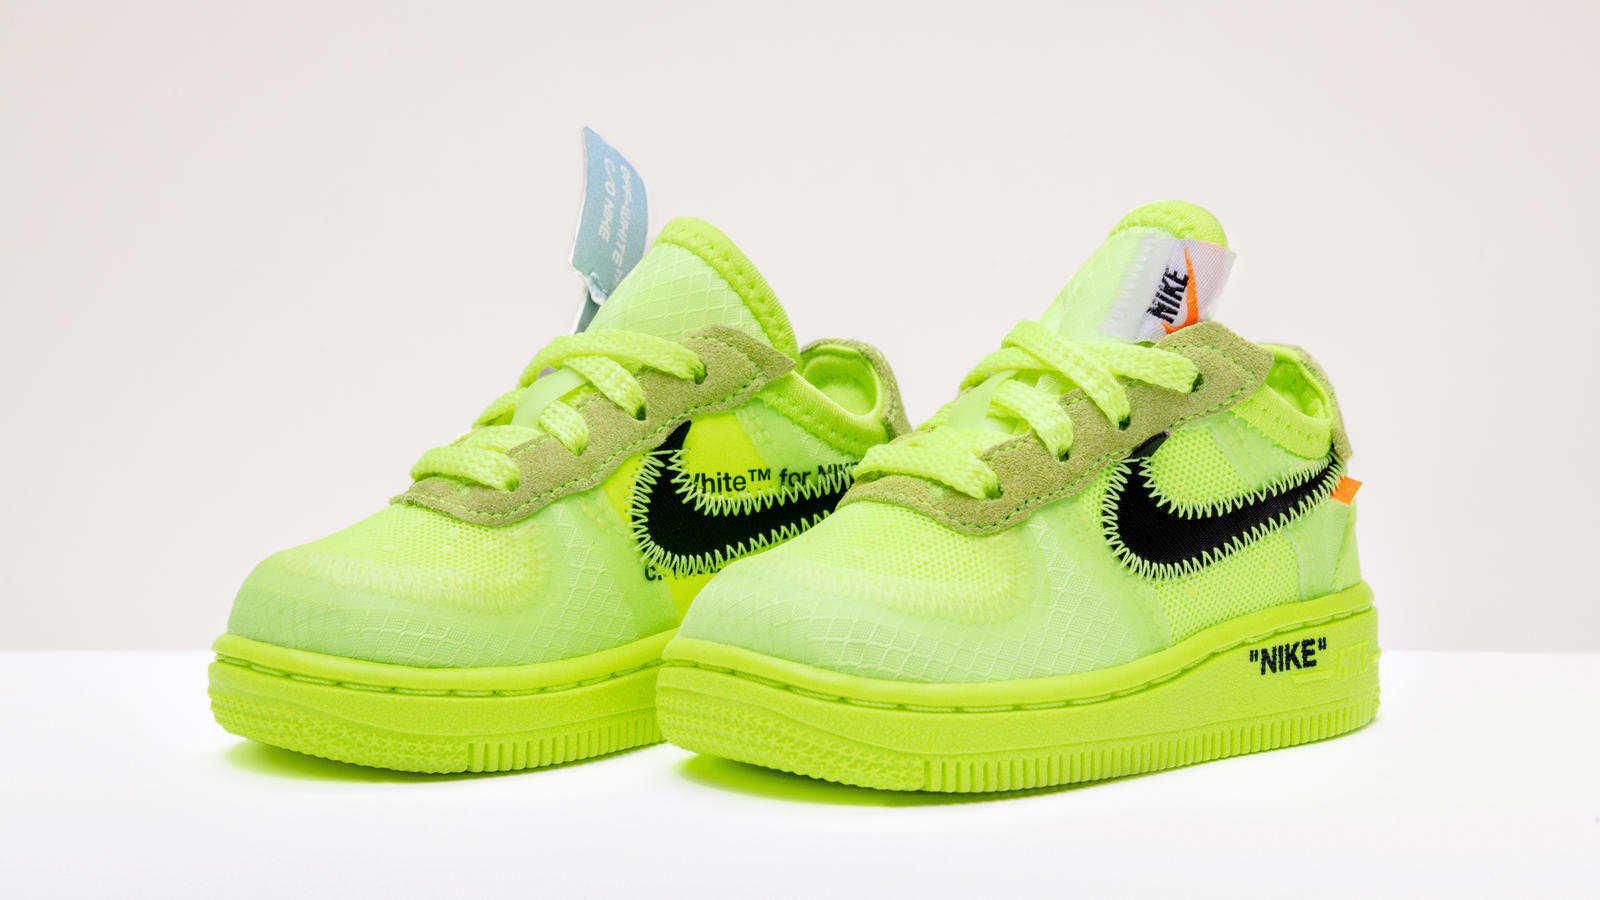 Nike Air Force 1 Utility Volt' Grade School Kids' Shoe